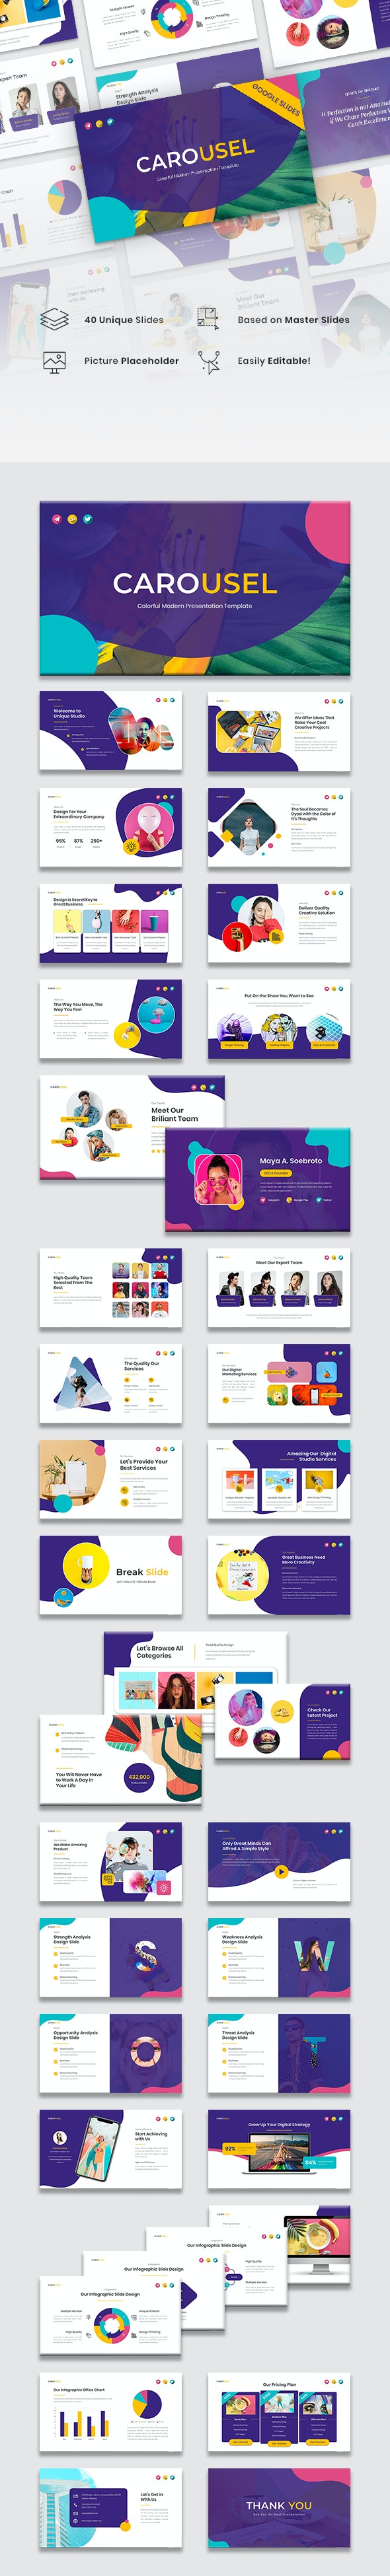 Carousel - Colorful Modern Google Slides Template - Google Slides Presentation Templates